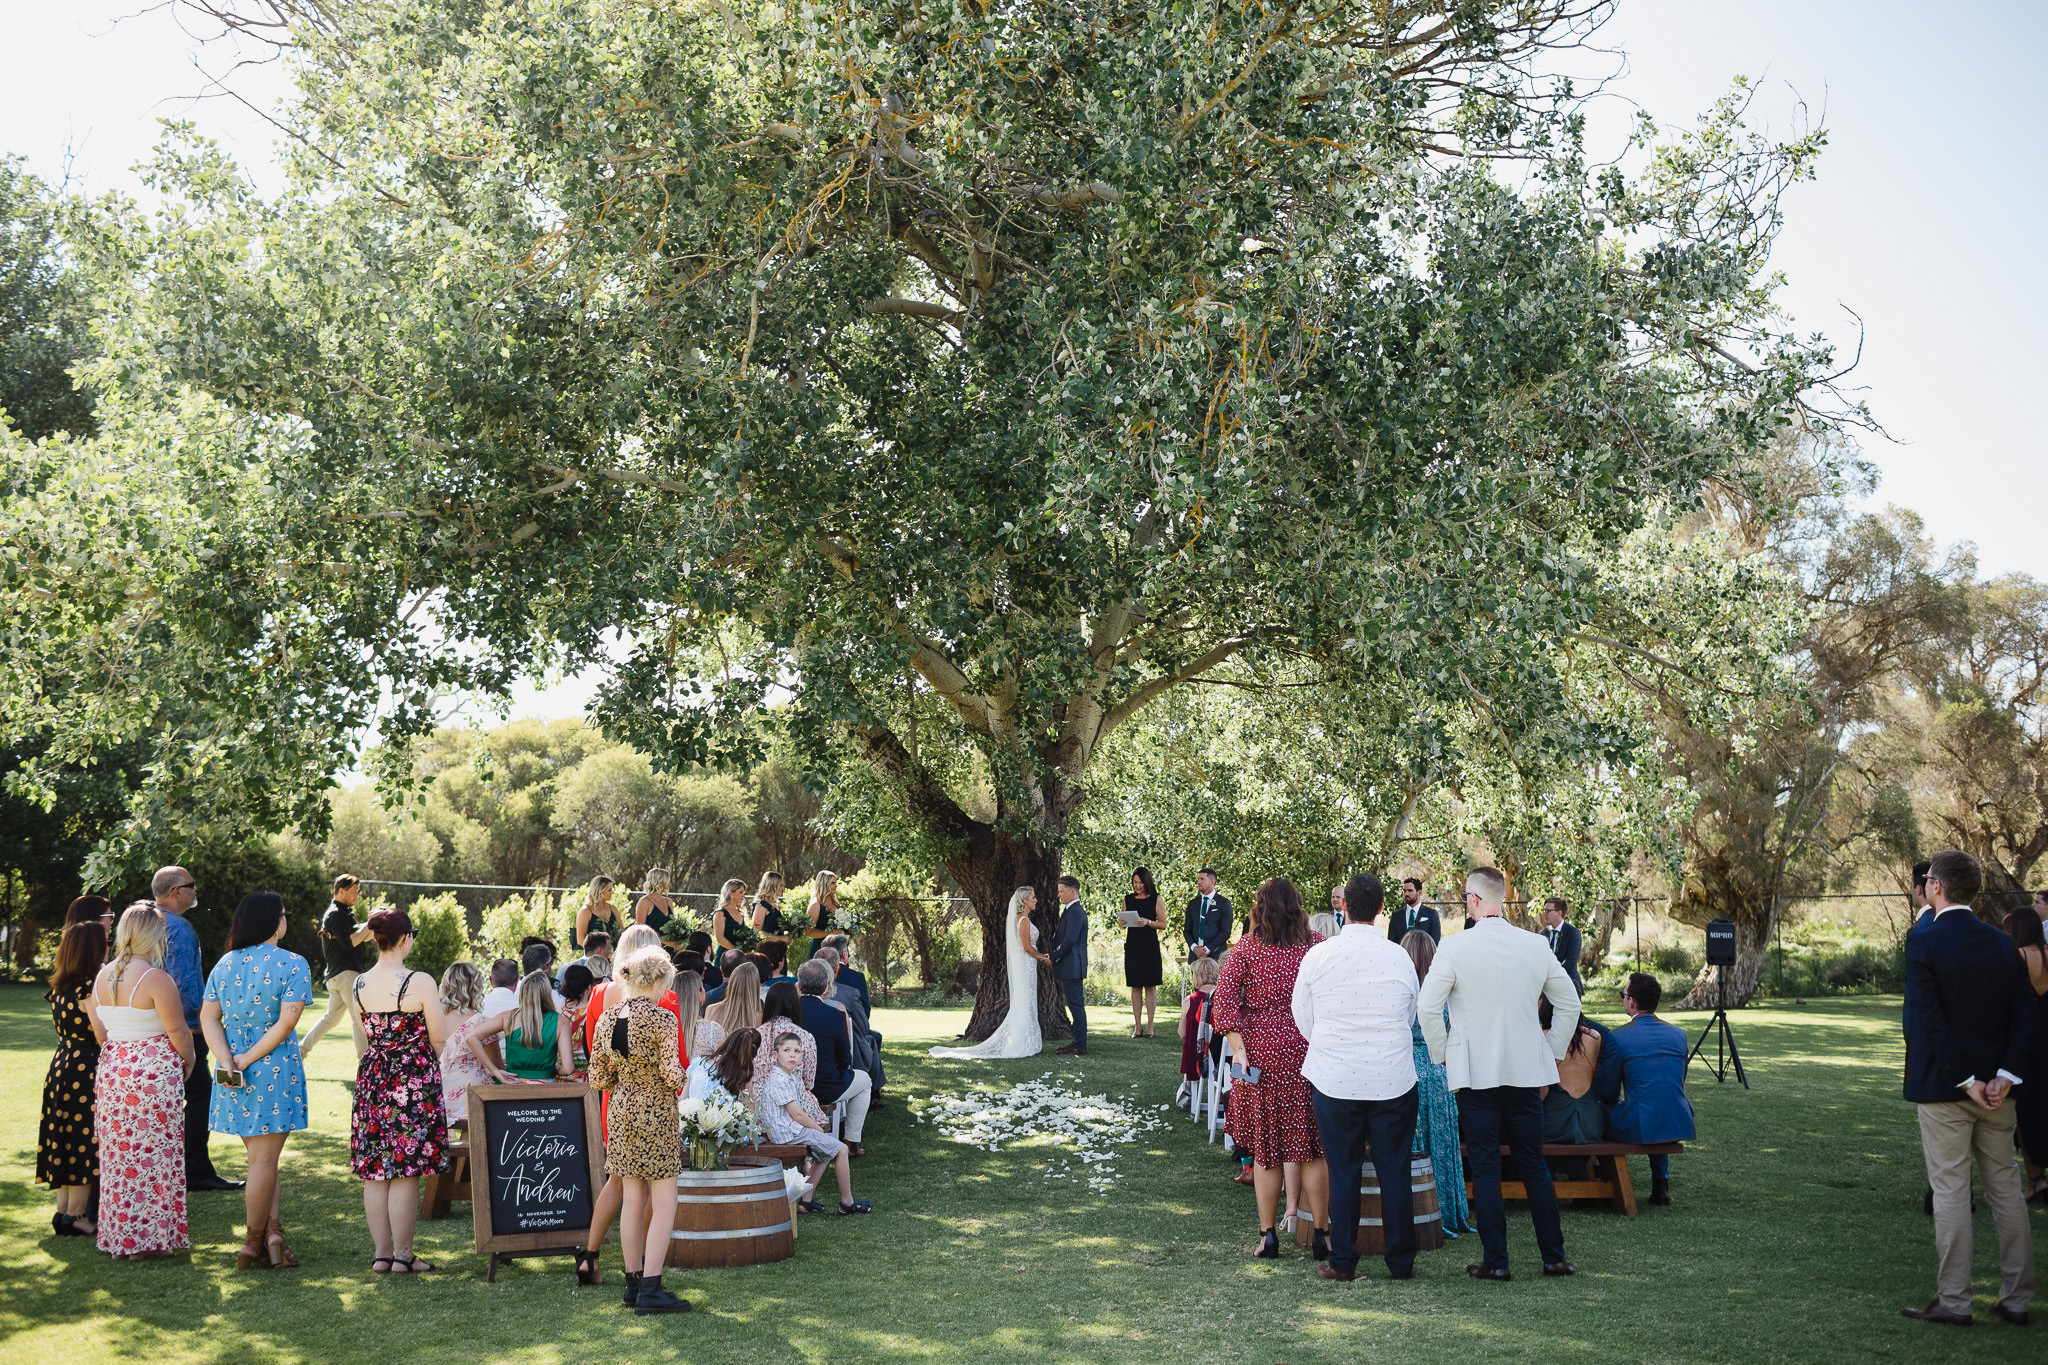 spring outdoor wedding ceremony under poplar tree at Old Broad Water Farm in Busselton